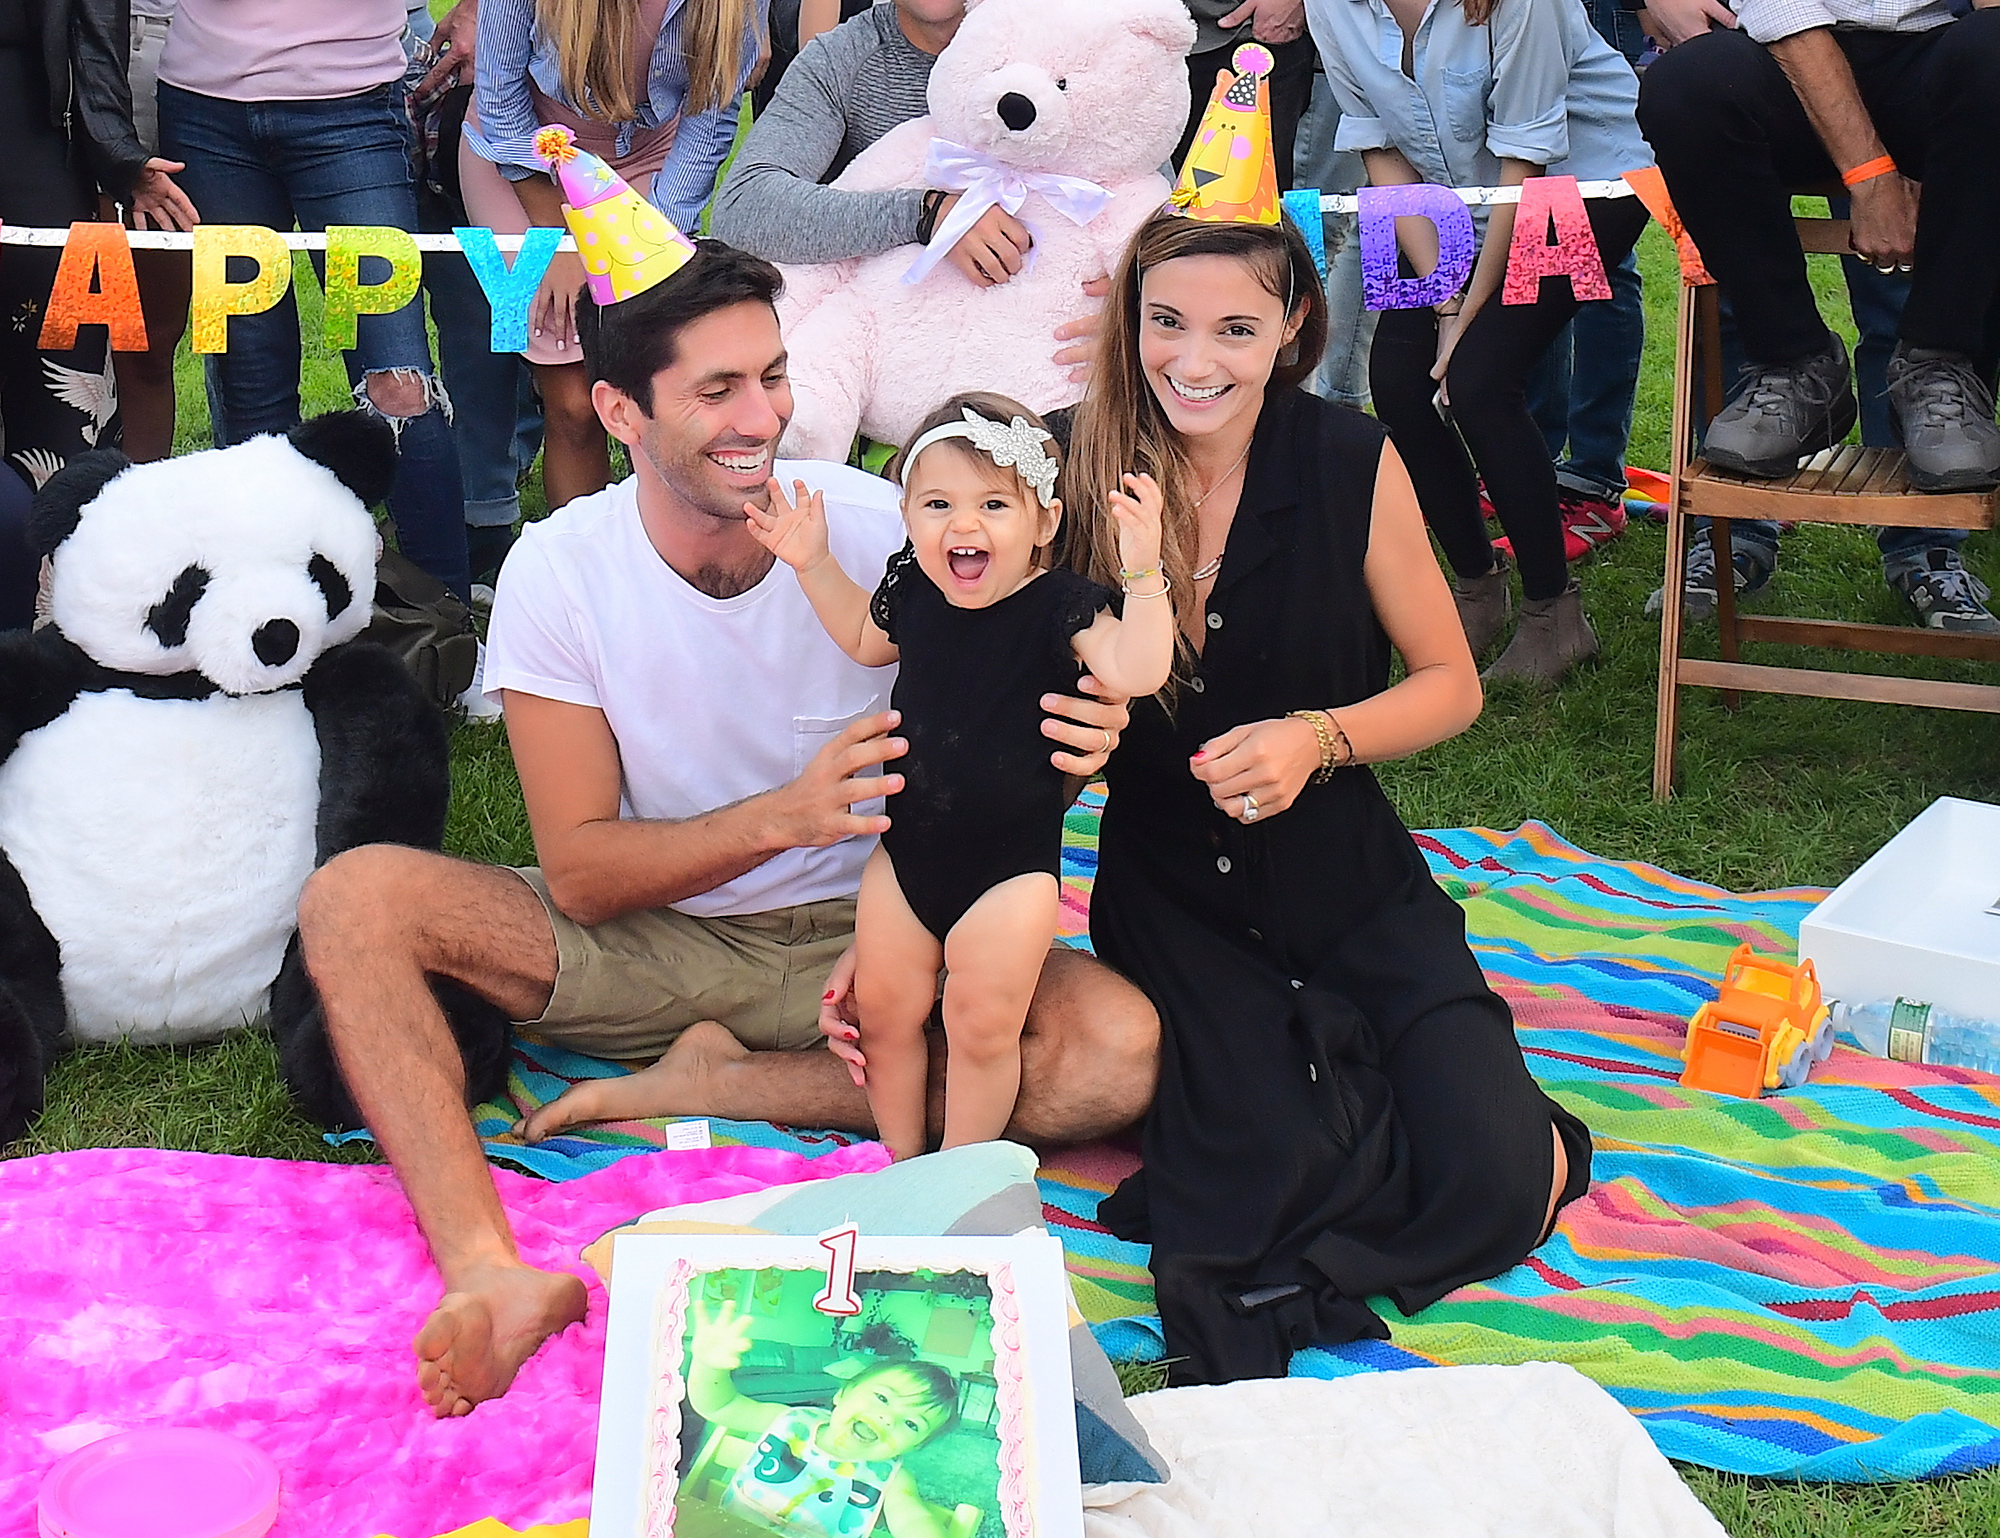 EXCLUSIVE: MTV Catfish Host Nev Schulman Throws Colorful 1st Birthday Party for his Daughter, Cleo, in Central Park